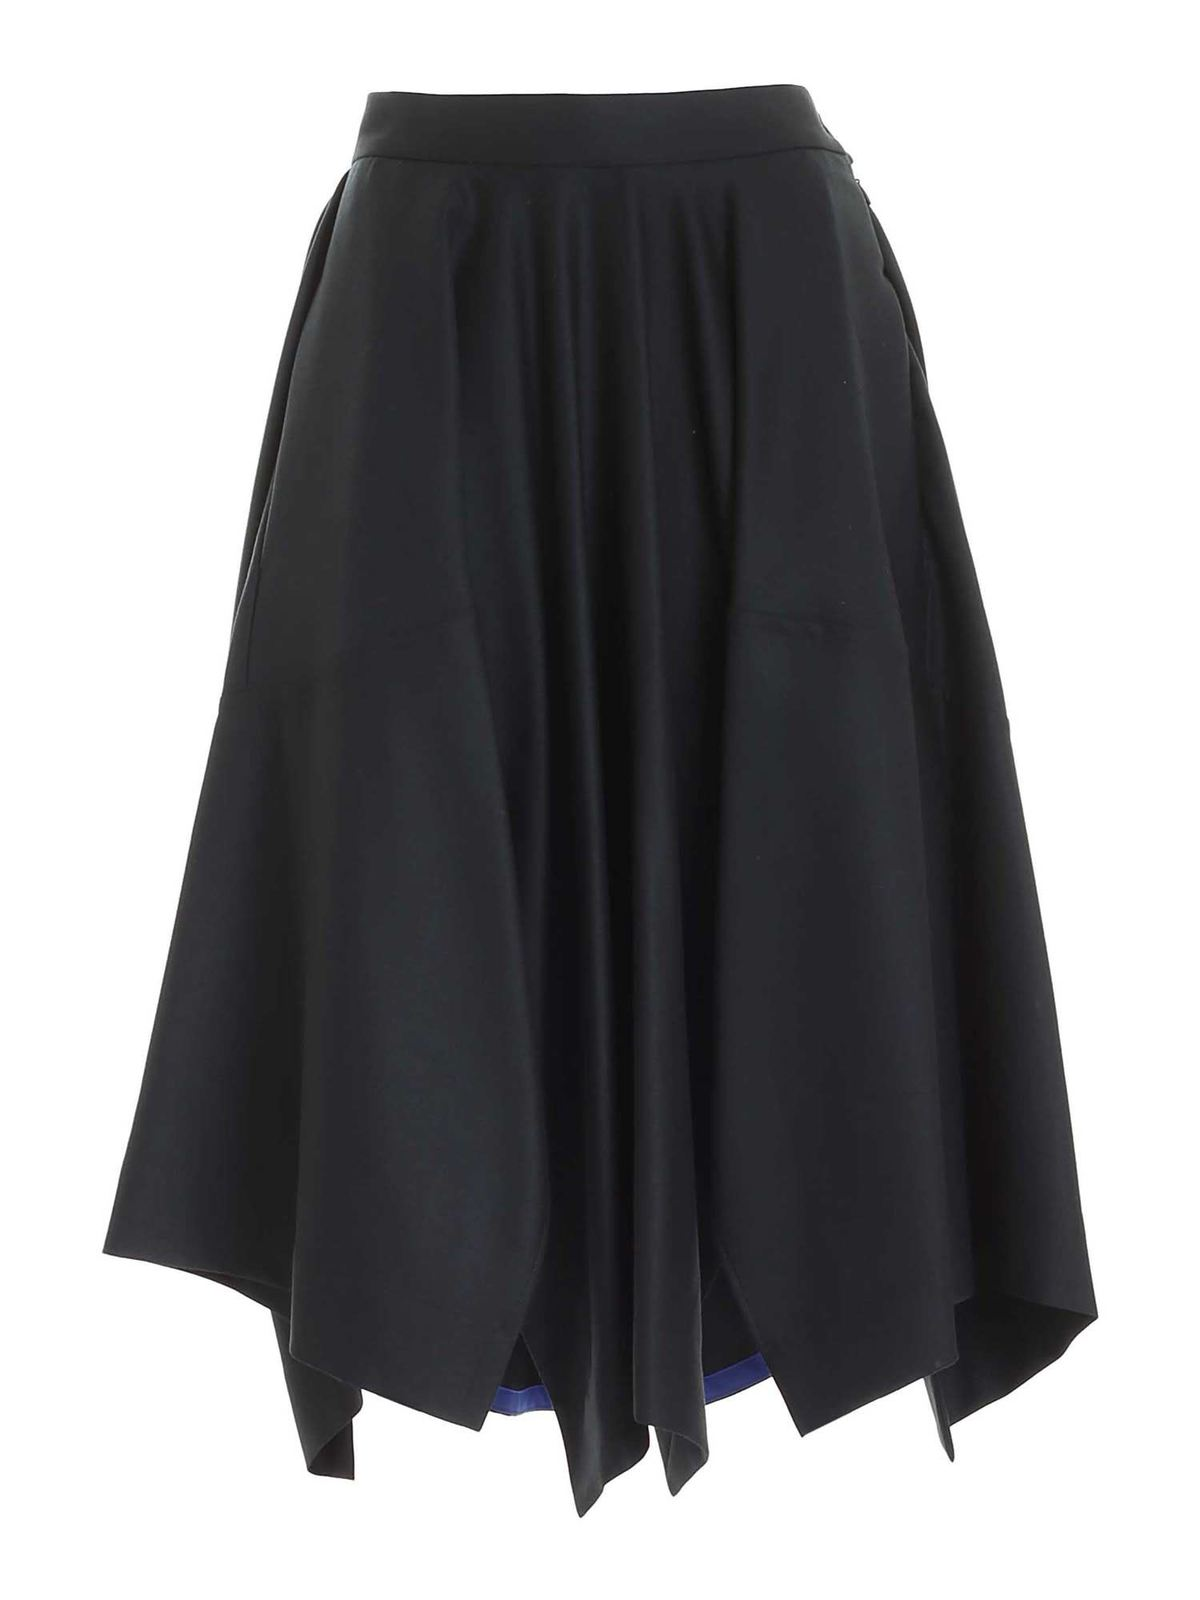 Vivienne Westwood KNOCKOUT SKIRT IN DARK GREEN